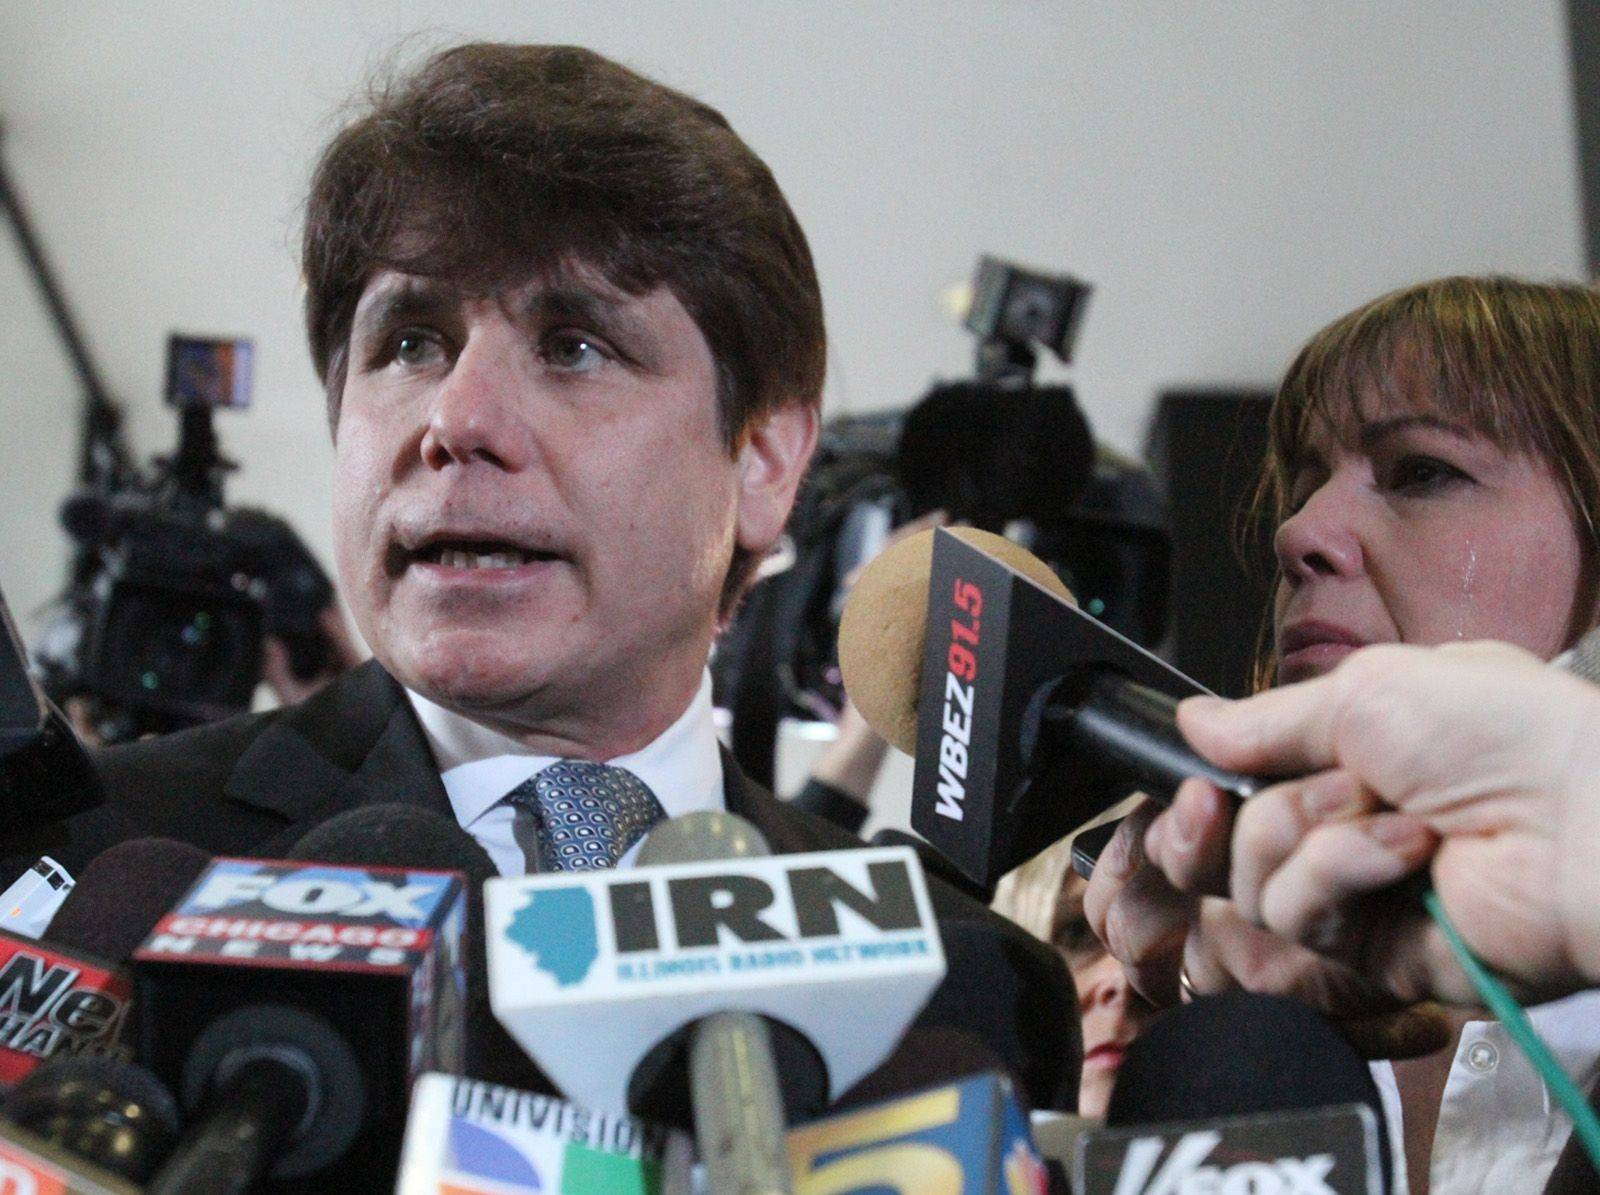 George LeClaire/gleclaire@dailyherald.com Former Governor Rod Blagojevich speaks to the press, with his wife Patti, after his sentencing hearing at the Dirksen Federal Building in Chicago on Wednesday, December 7th.